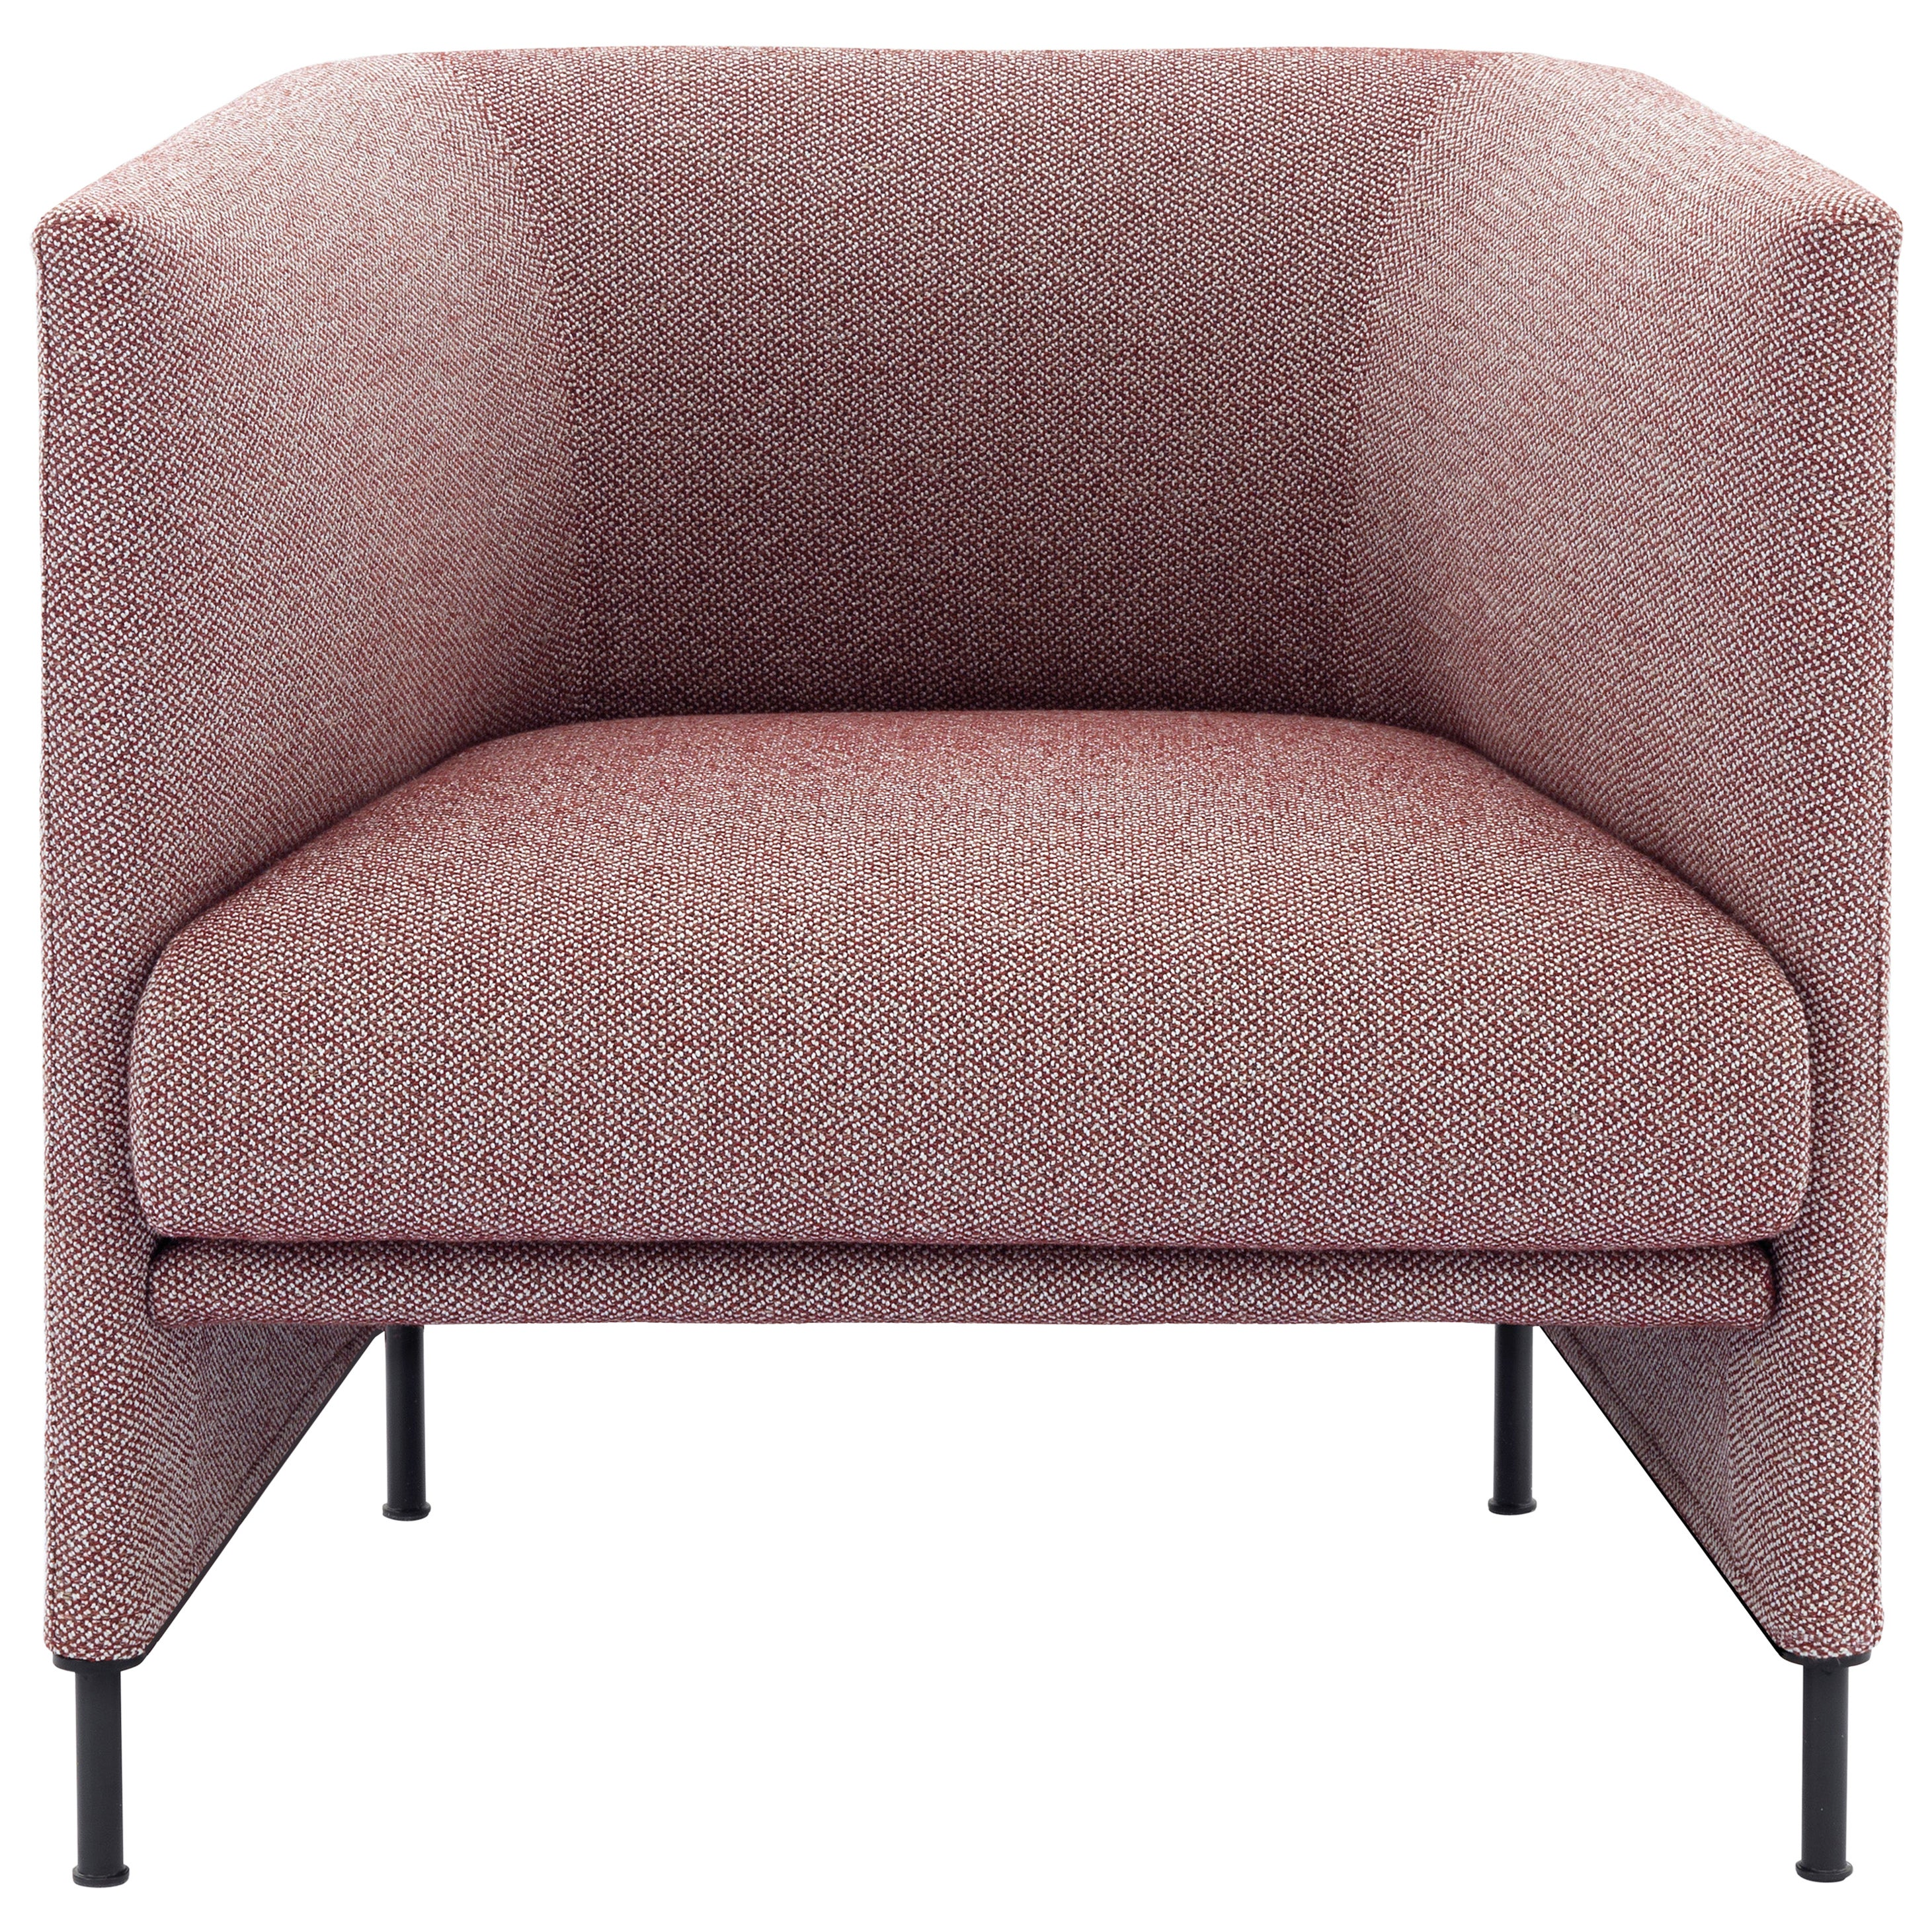 Arflex Algon Low Back Armchair in Pink Boucle Fabric by Luca Nichetto